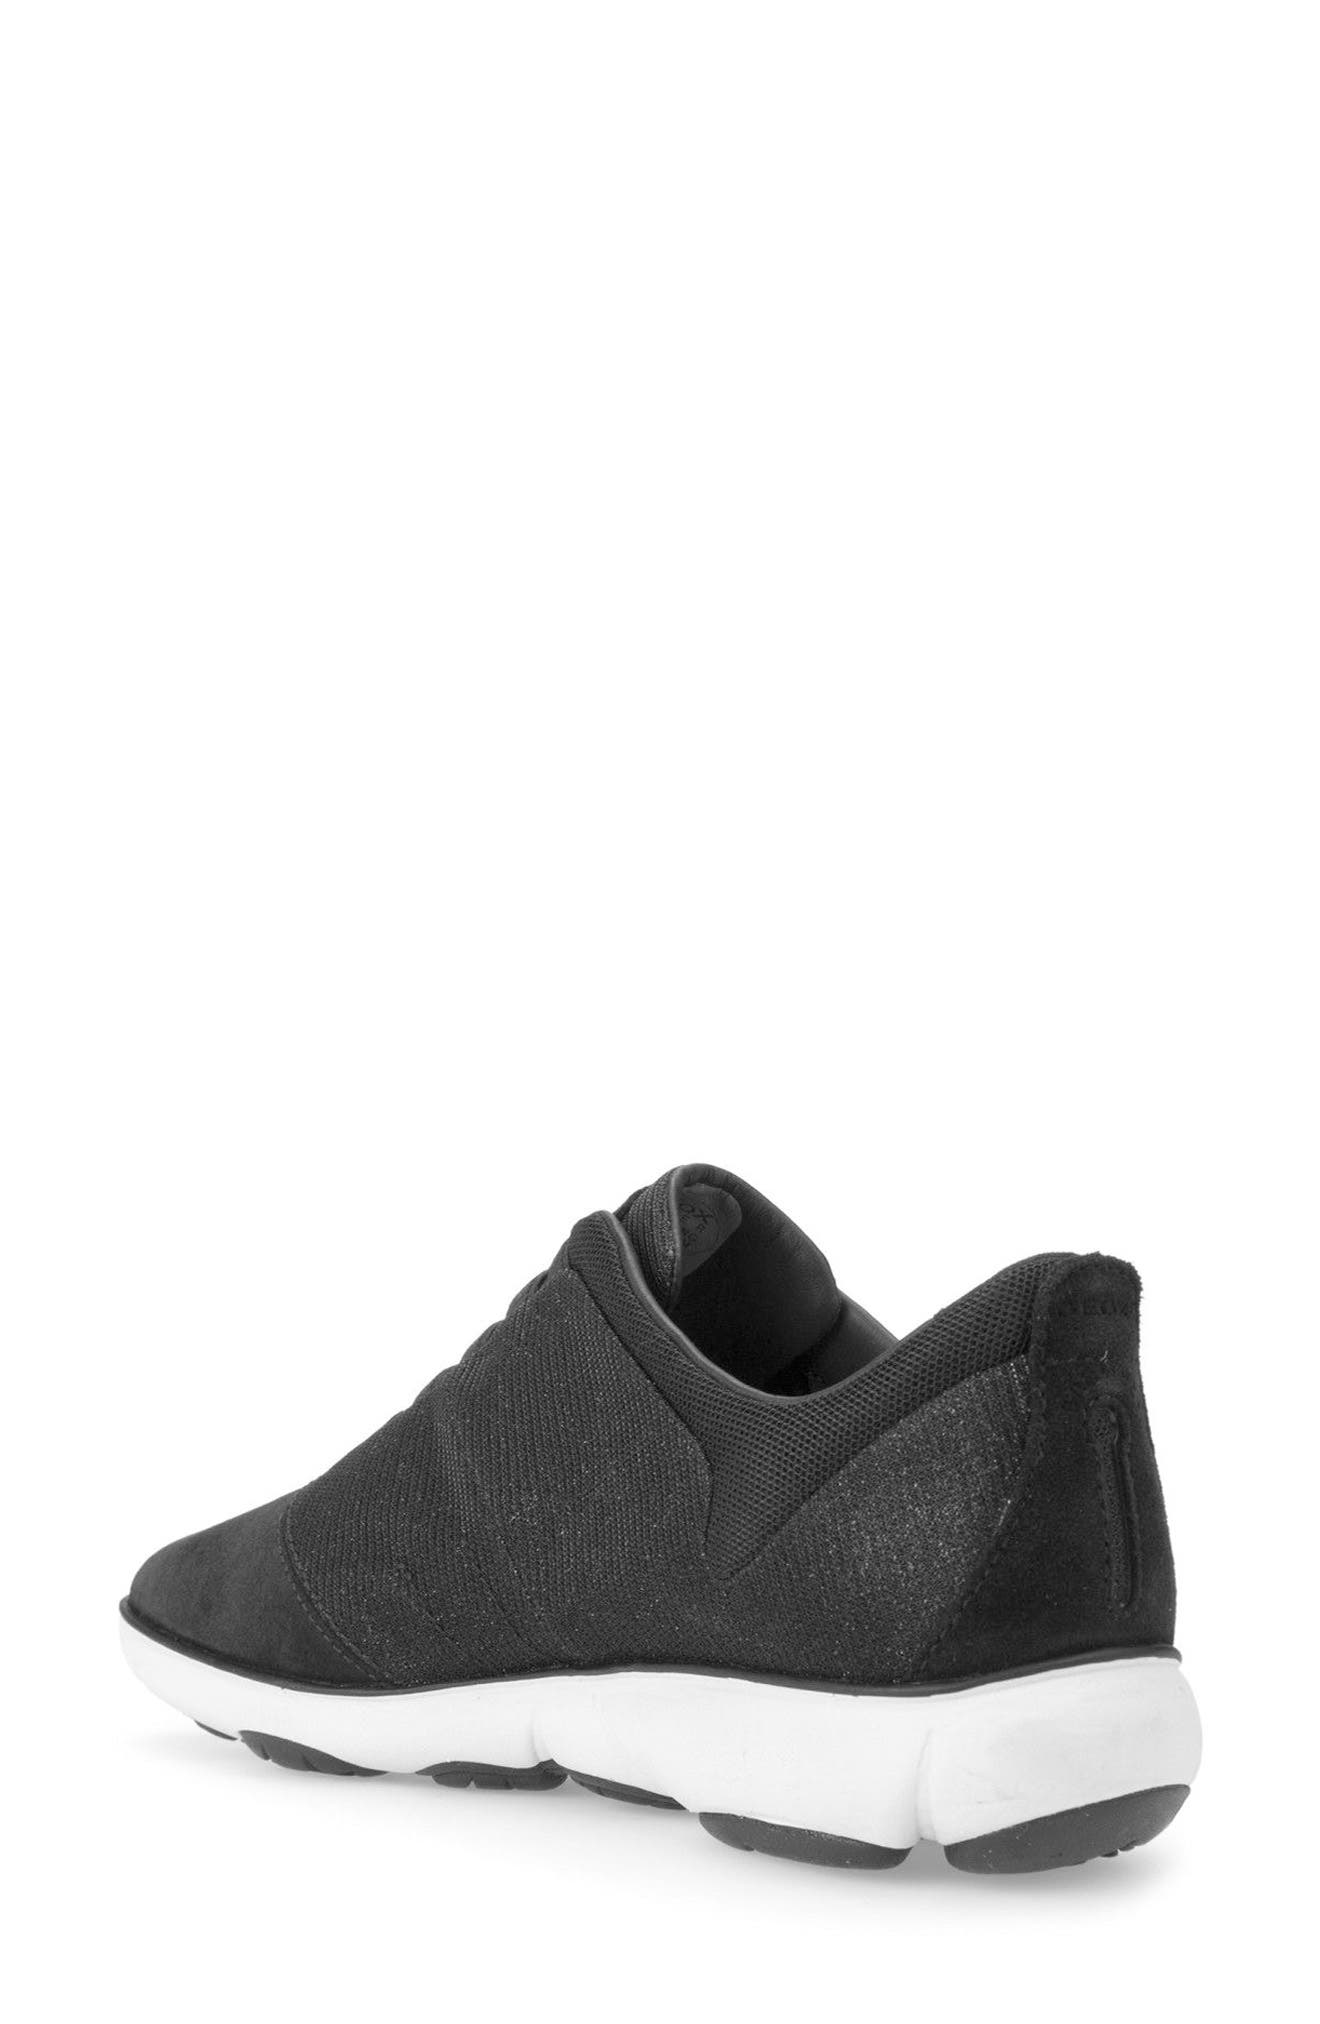 Nebula Slip-On Sneaker,                             Alternate thumbnail 2, color,                             Black